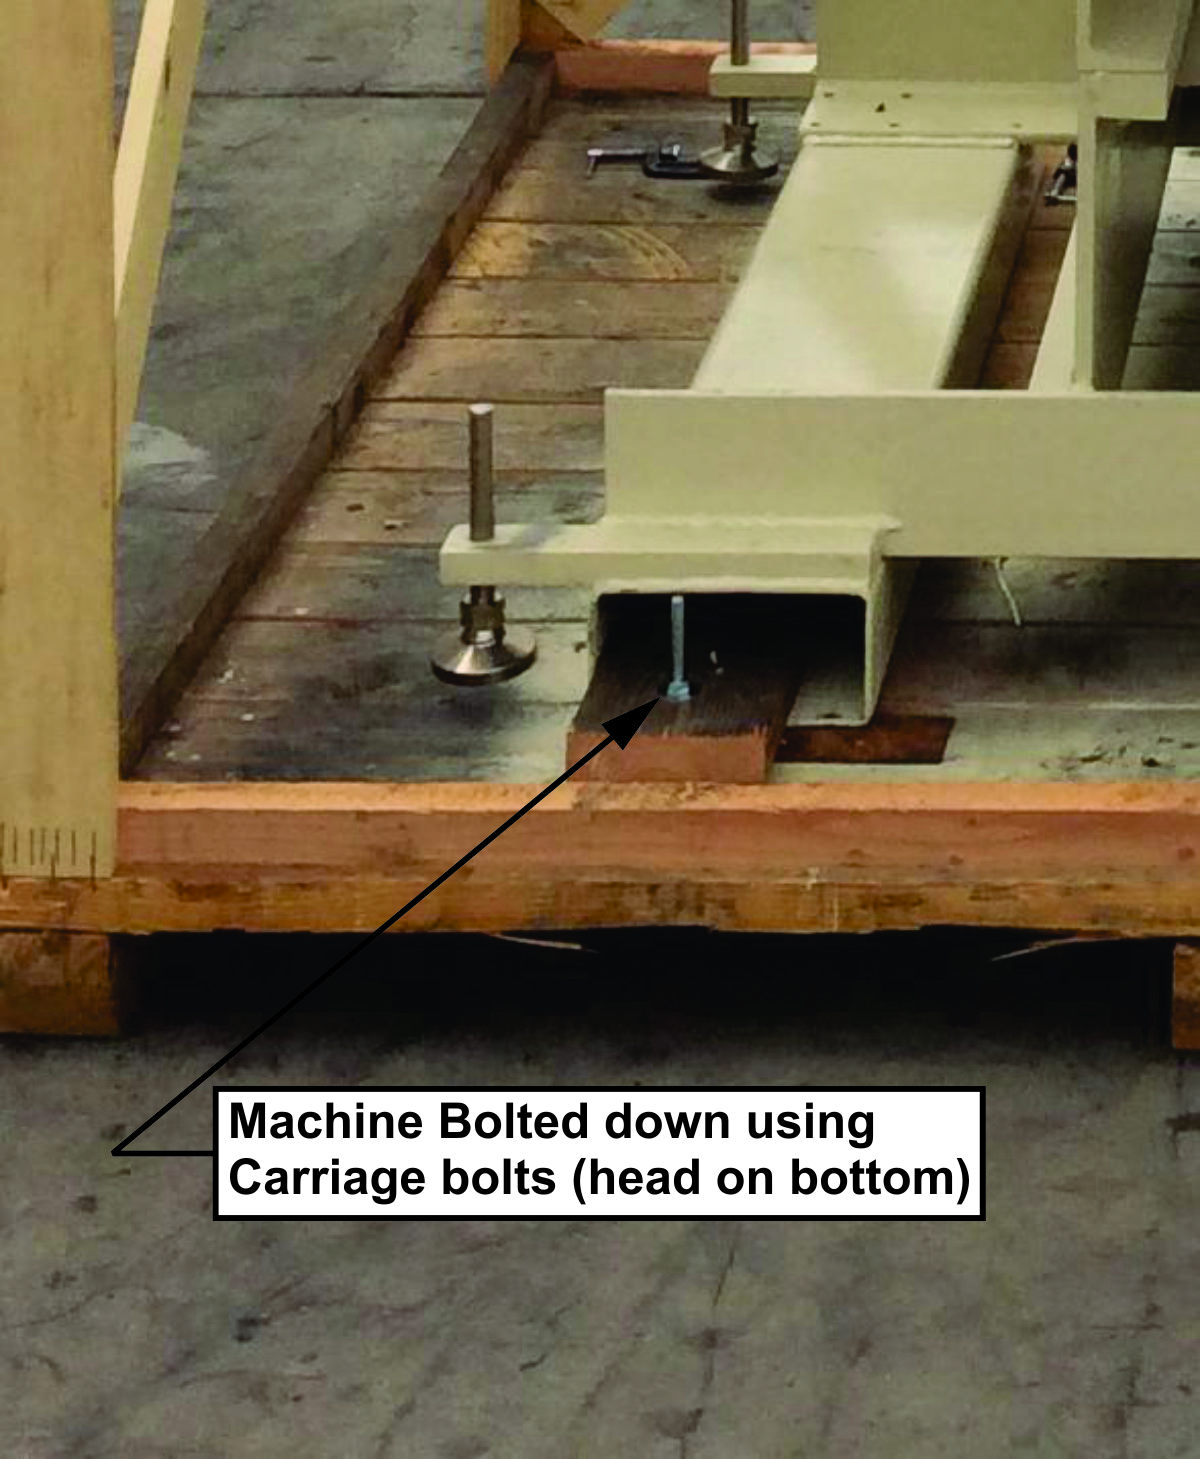 Machine Bolted Down